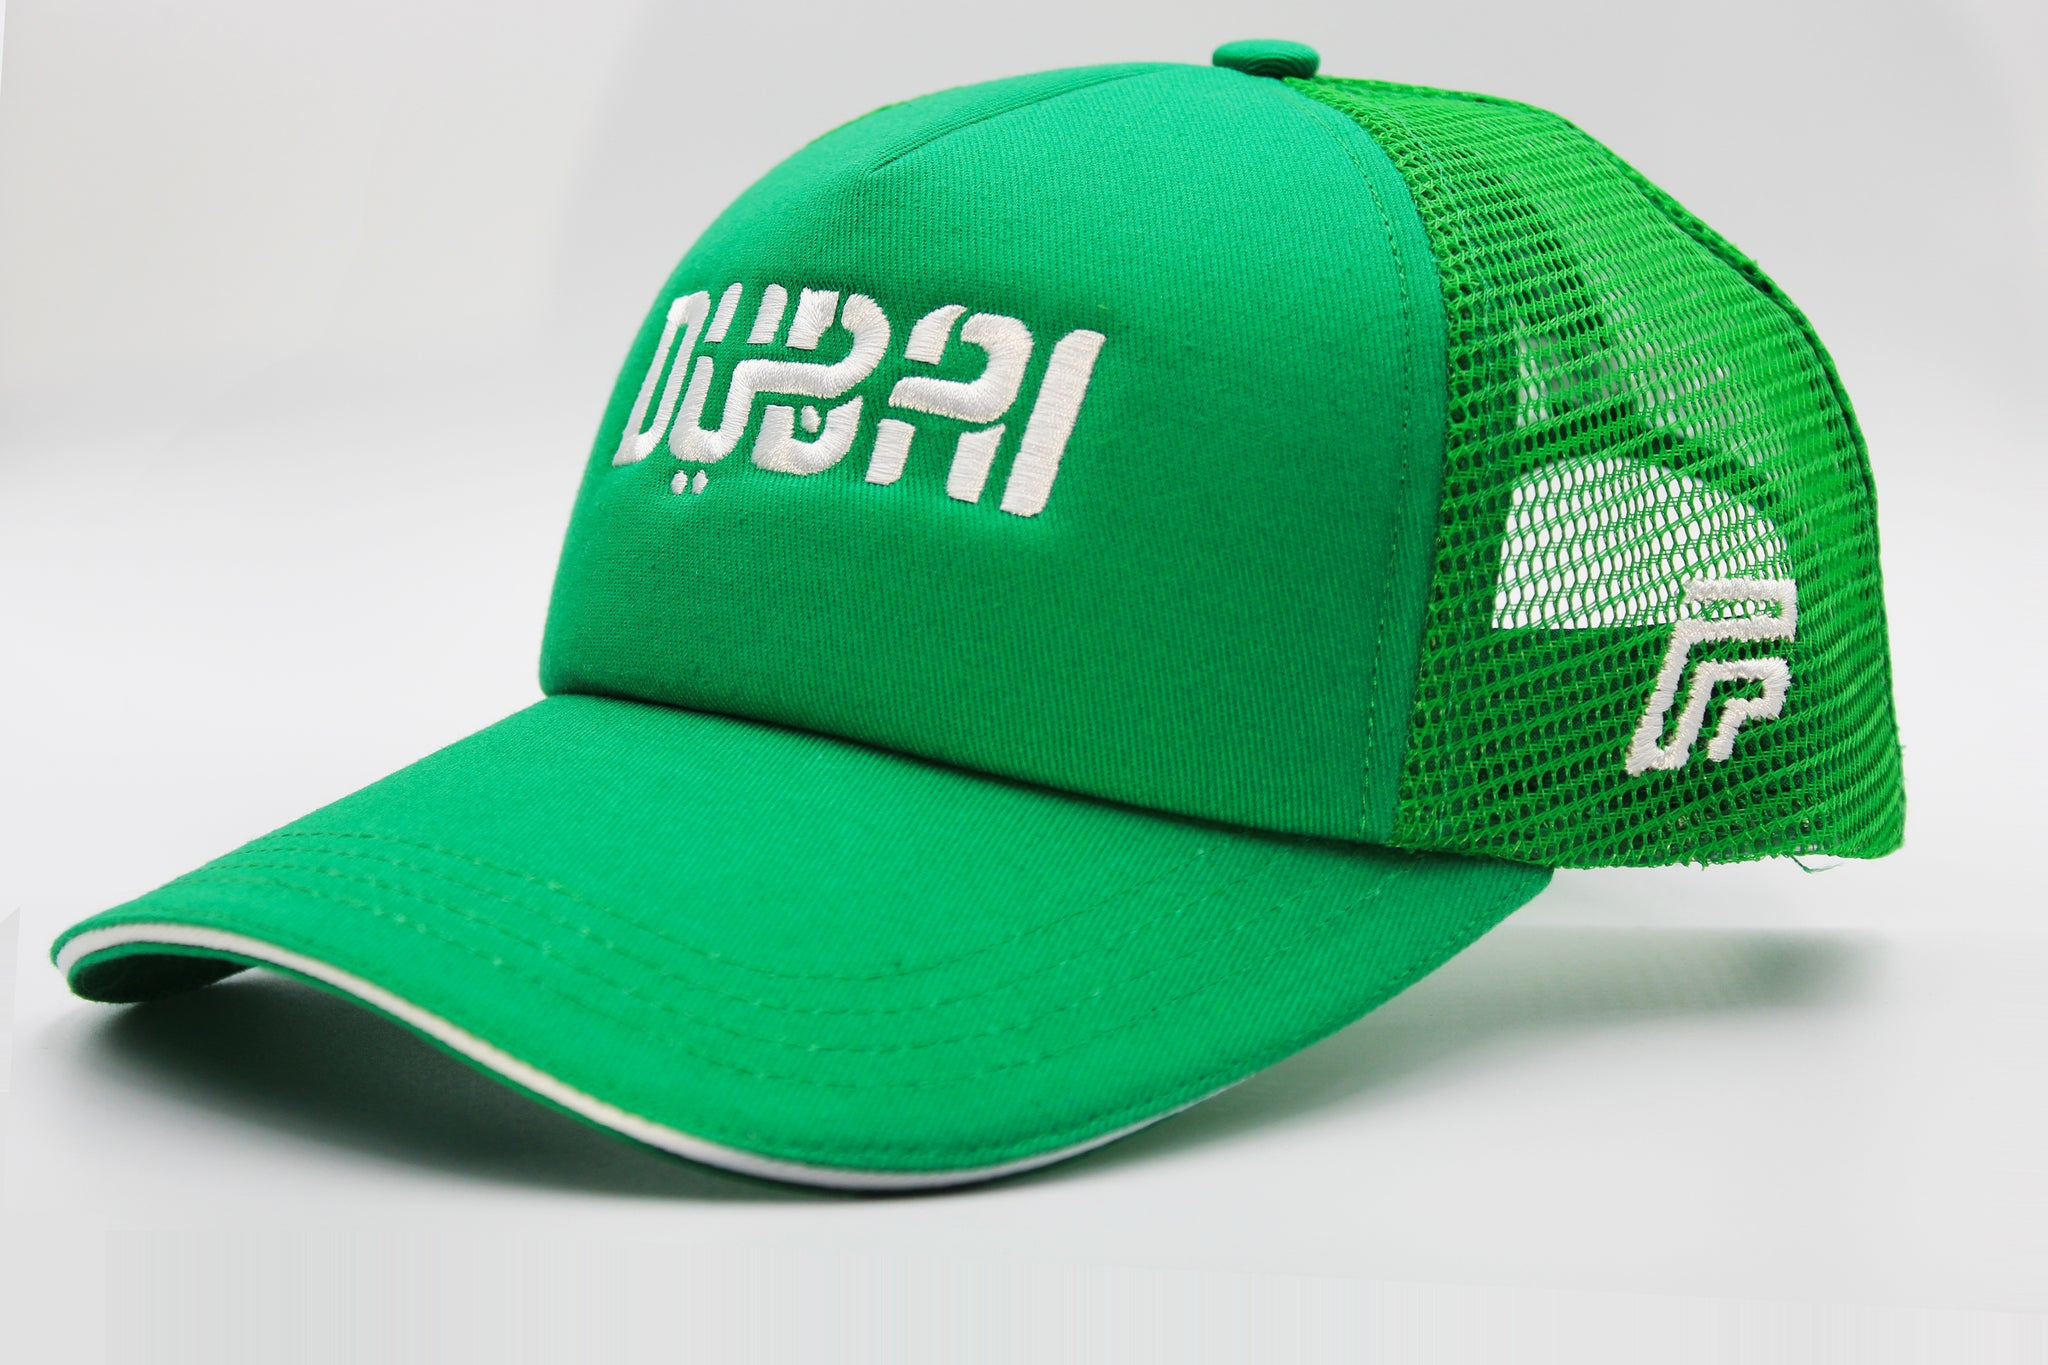 Foxerz Dubai green cap sidelong view